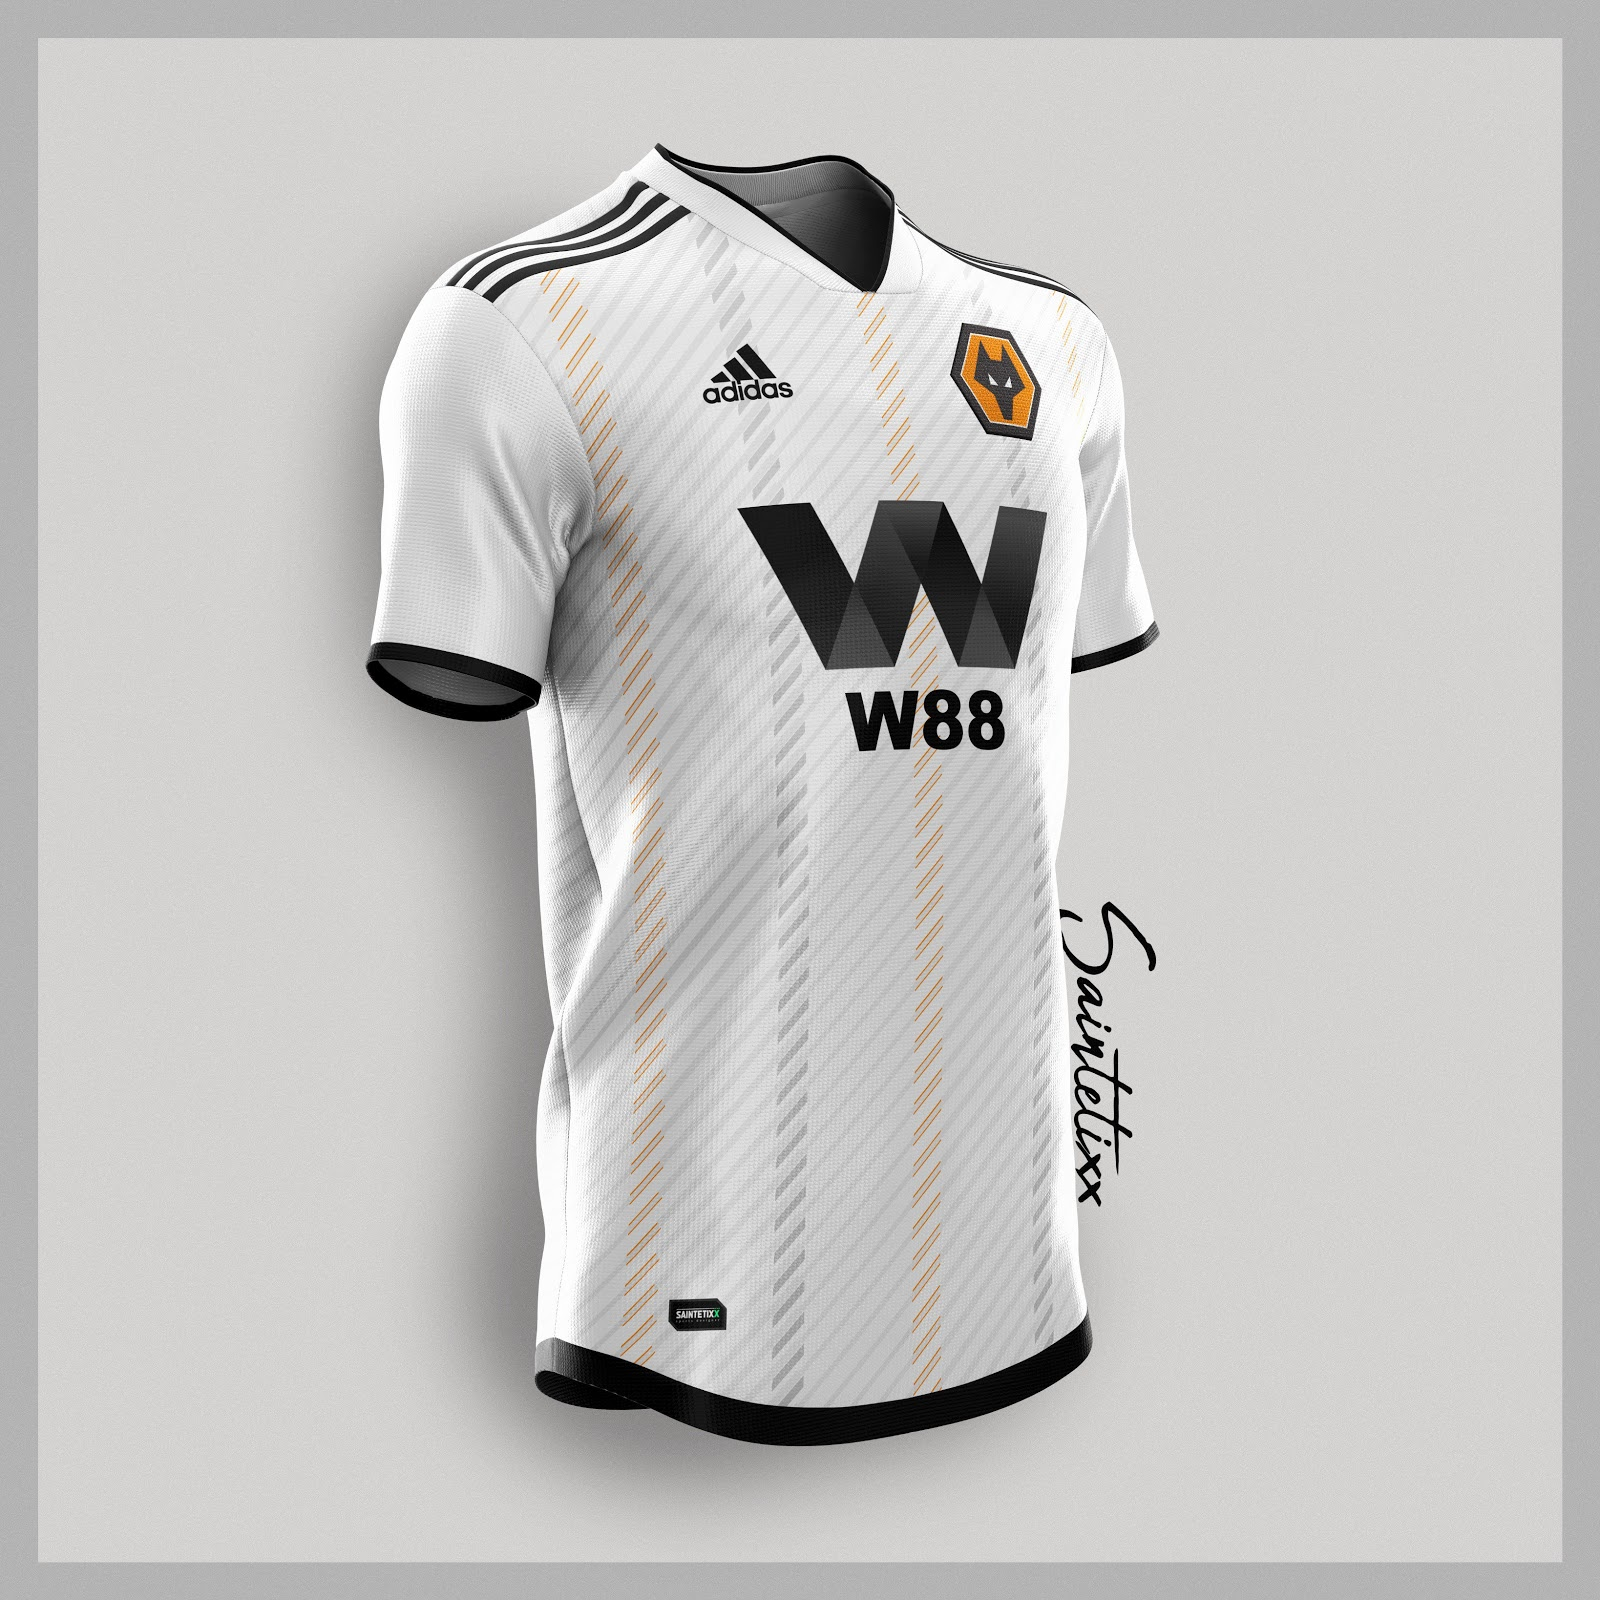 3548e6740b1 Saintetixx's Adidas Wolverhampton Wanderers 2019-20 concept third jersey is  white with a clever diagonal design on the front.